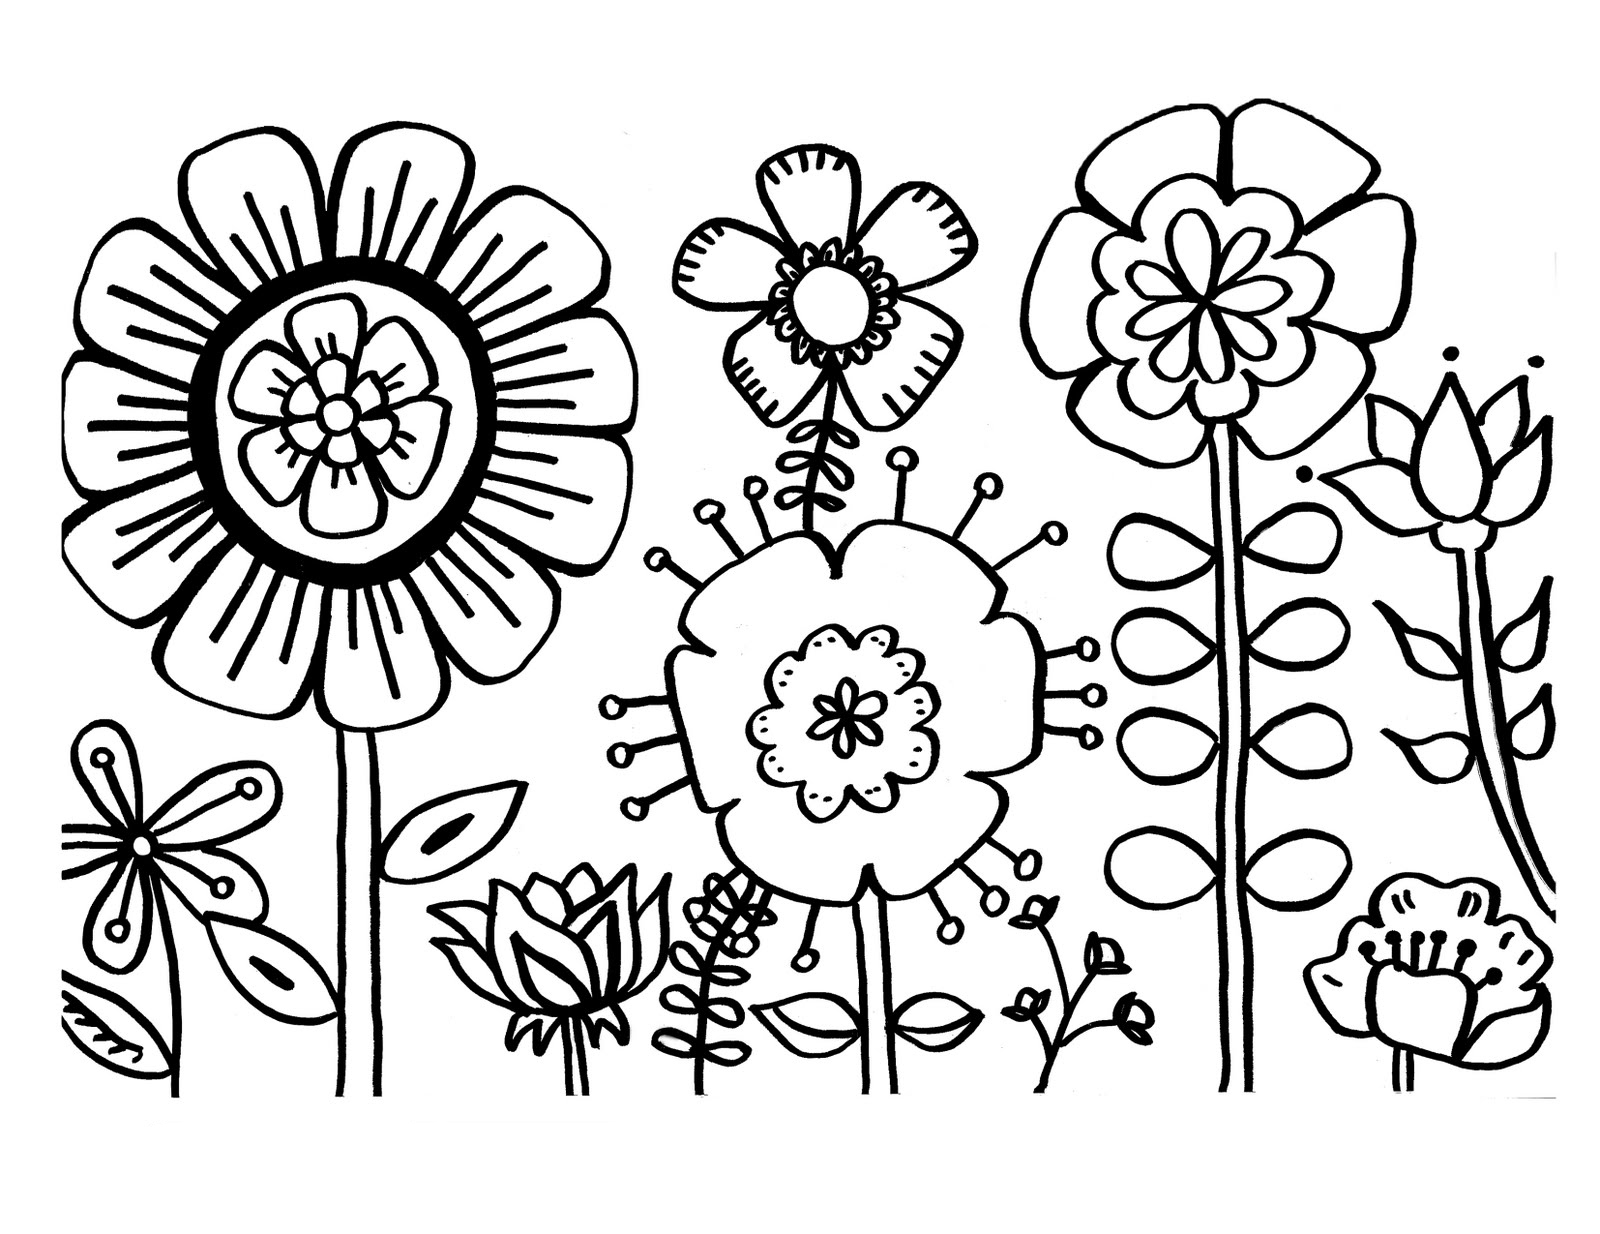 free printable flower coloring pages summer flowers printable coloring pages free large images pages coloring printable flower free